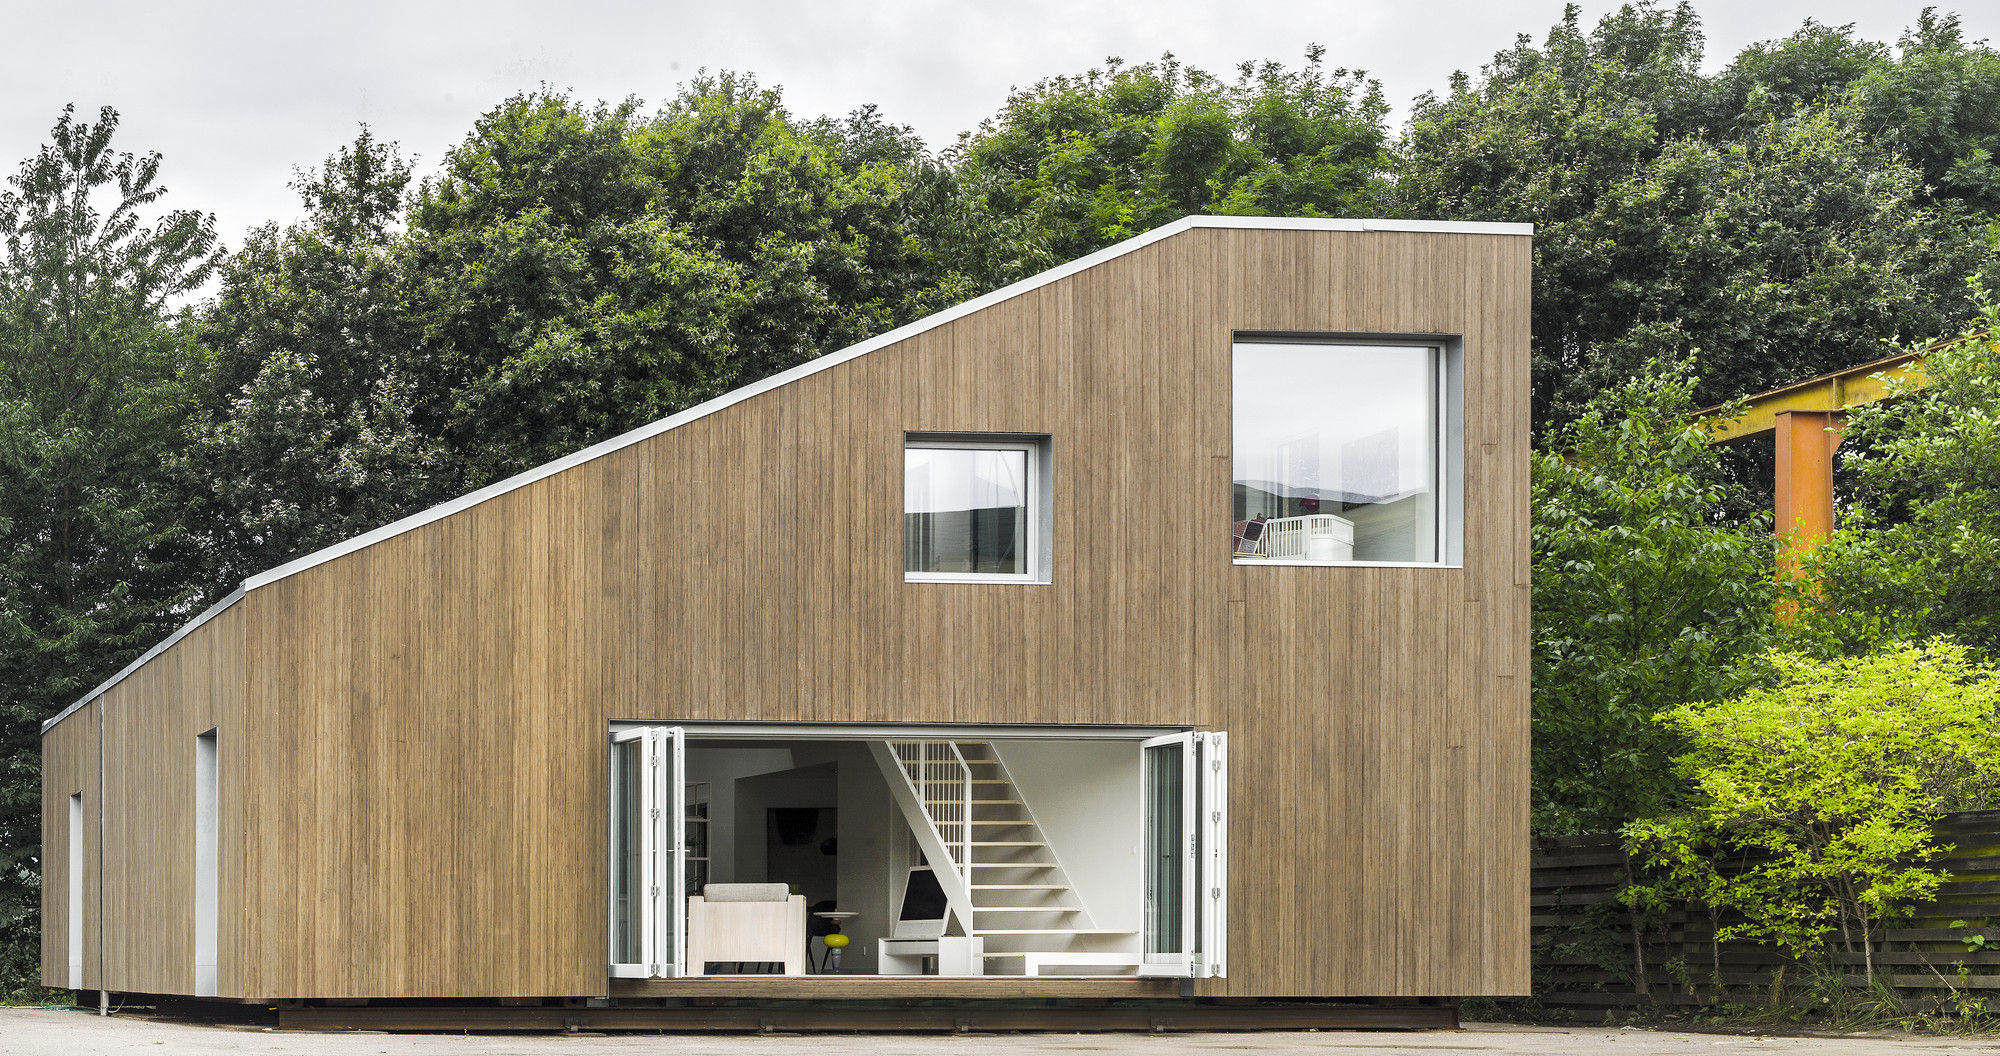 Sustainable Prefab House Made Of Shipping Containers Archipreneur